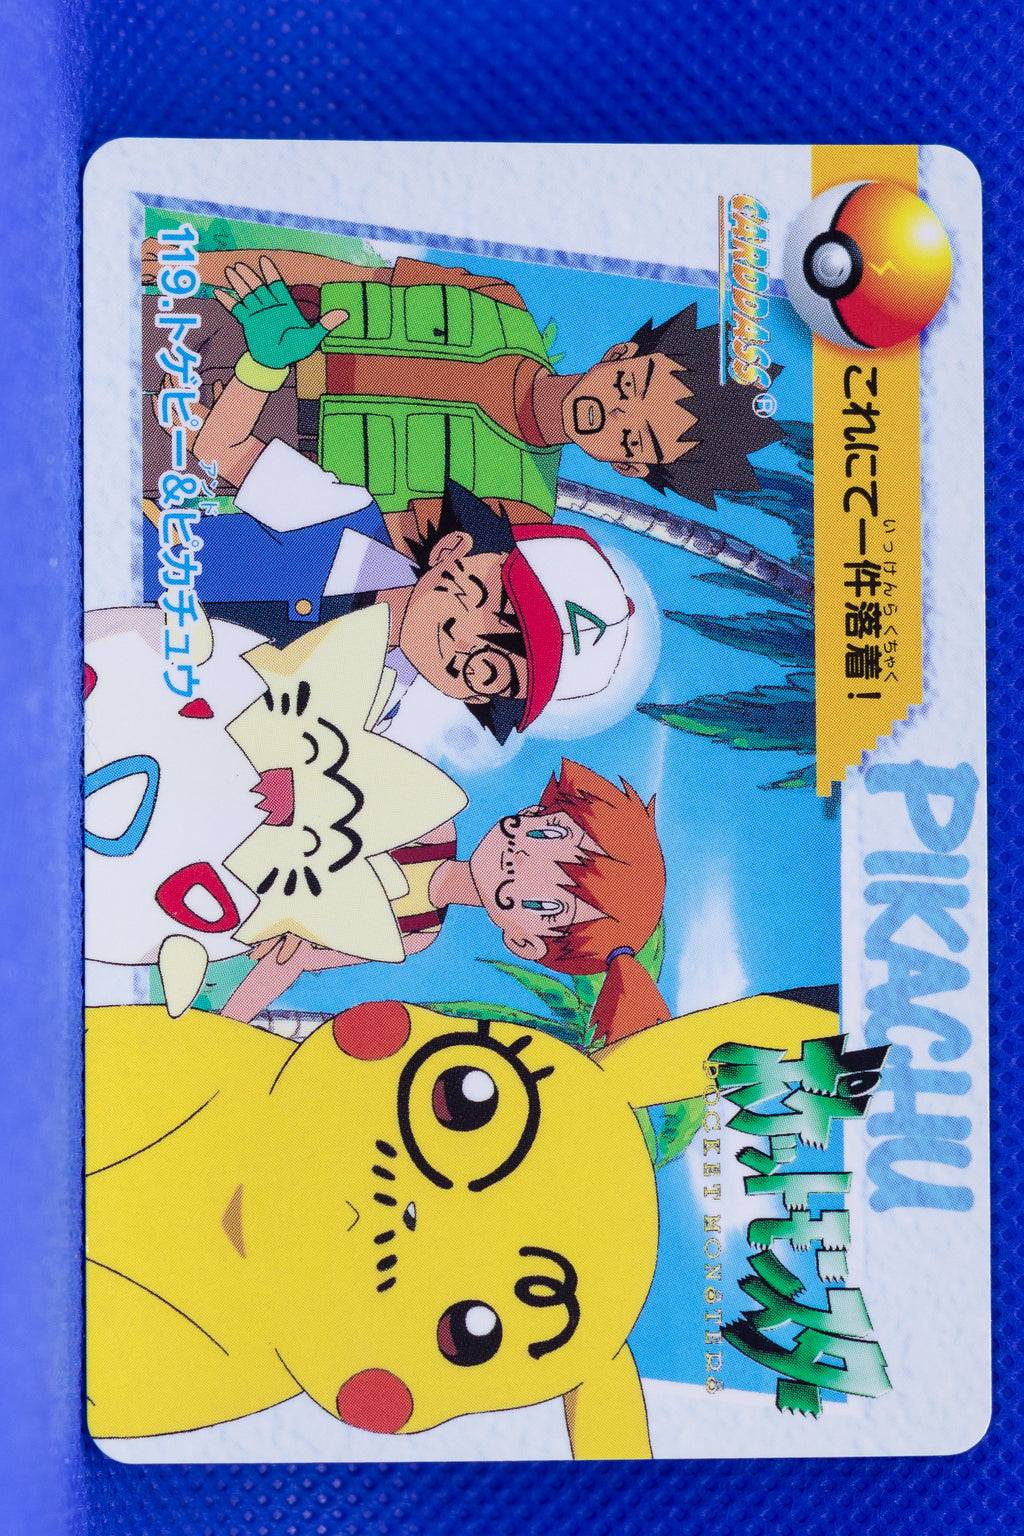 Bandai 1998 Anime Series 119 Togepi & Pikachu